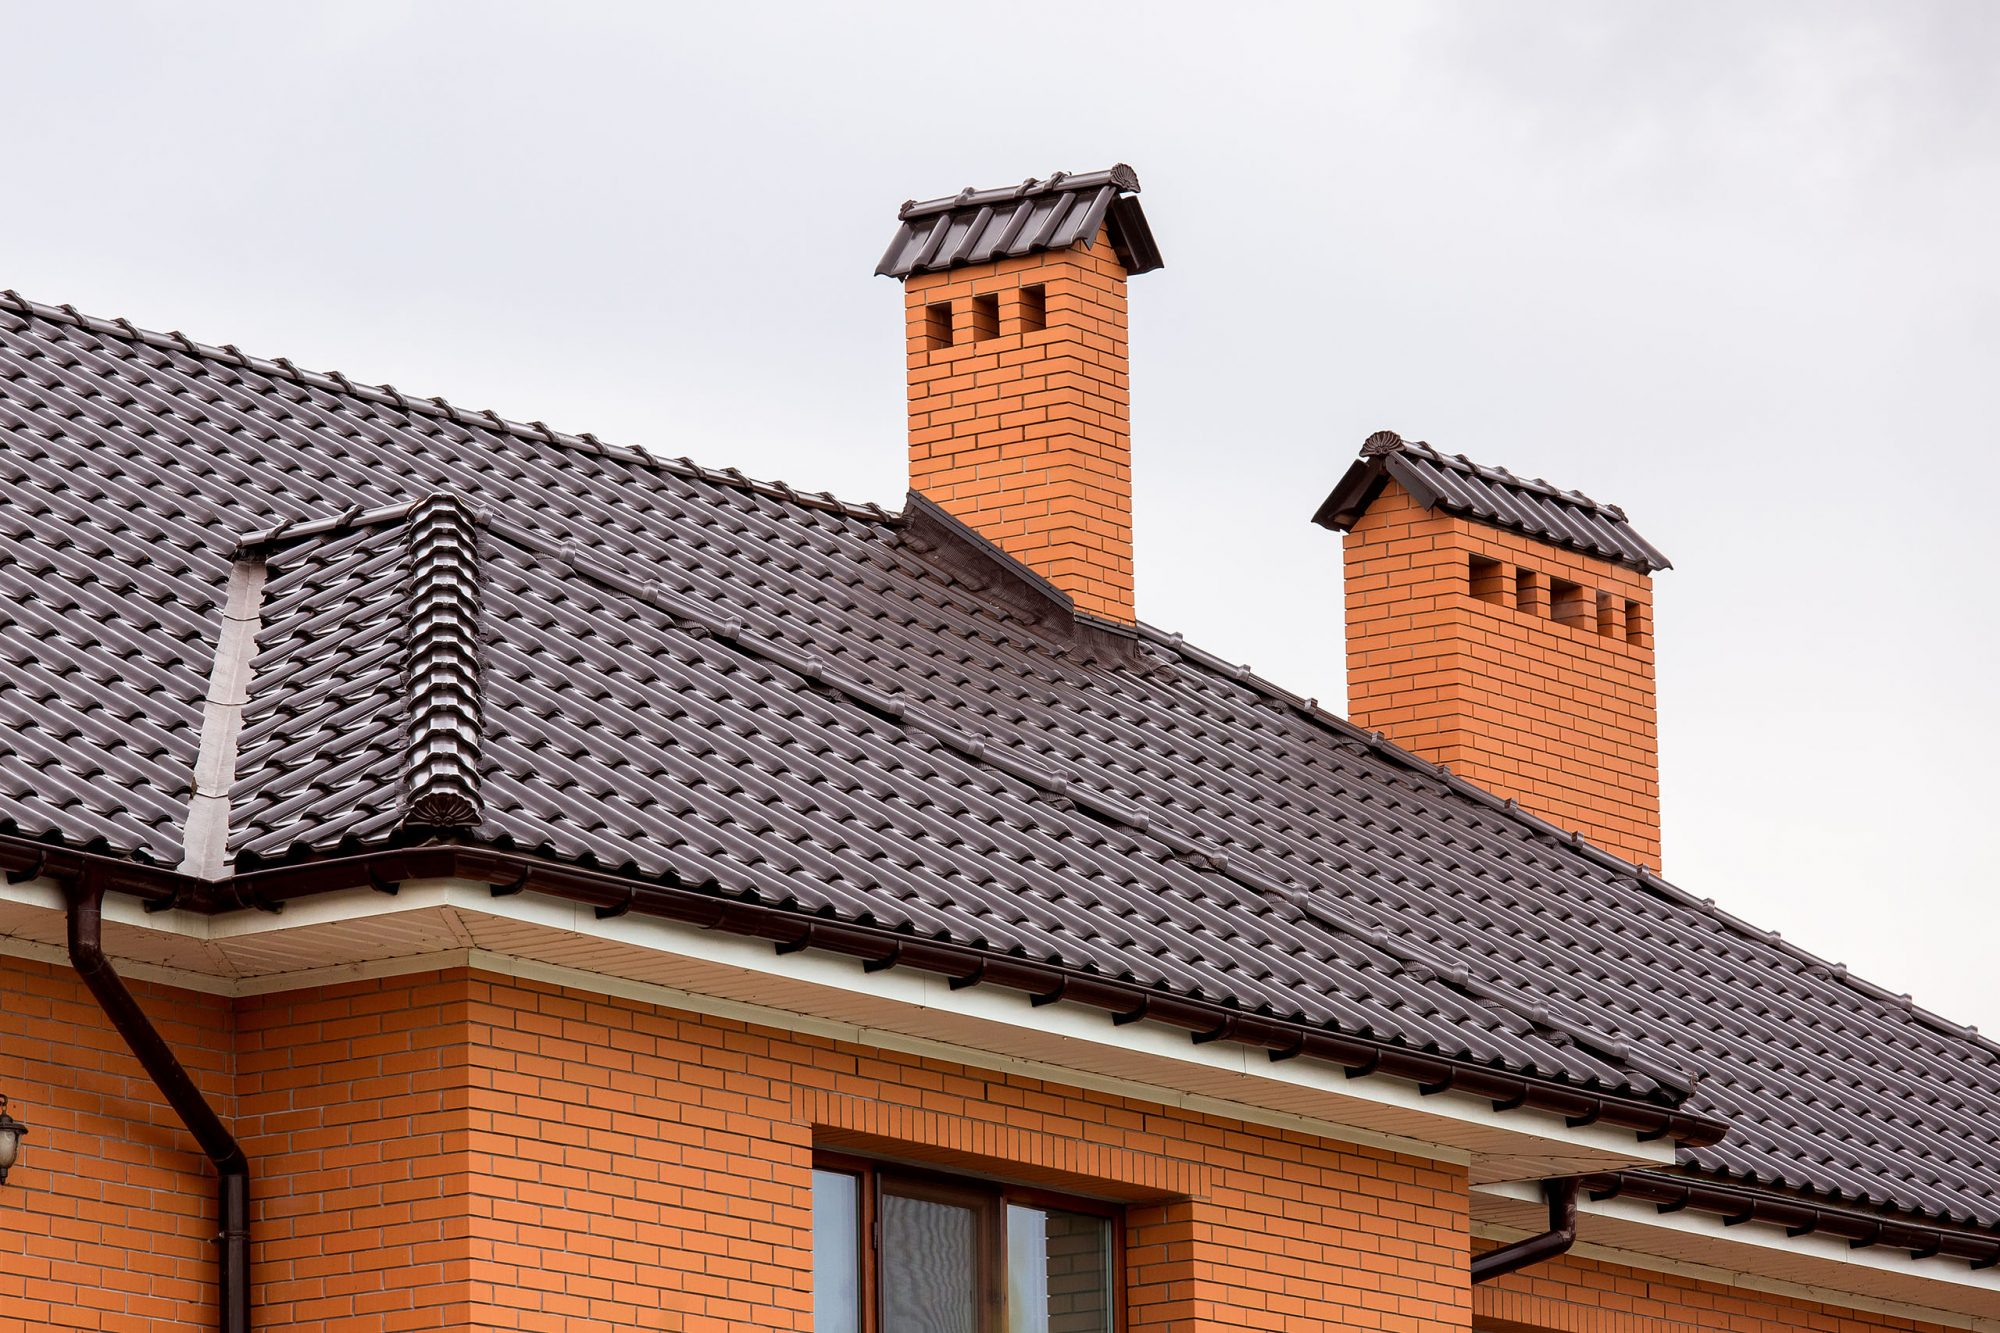 excellent synthetic tile roof company st louis missouri chesterfield synthetic roofing composite clay tile roof luxury roofing company chesterfield ladue town and country creve coeur eureka missouri